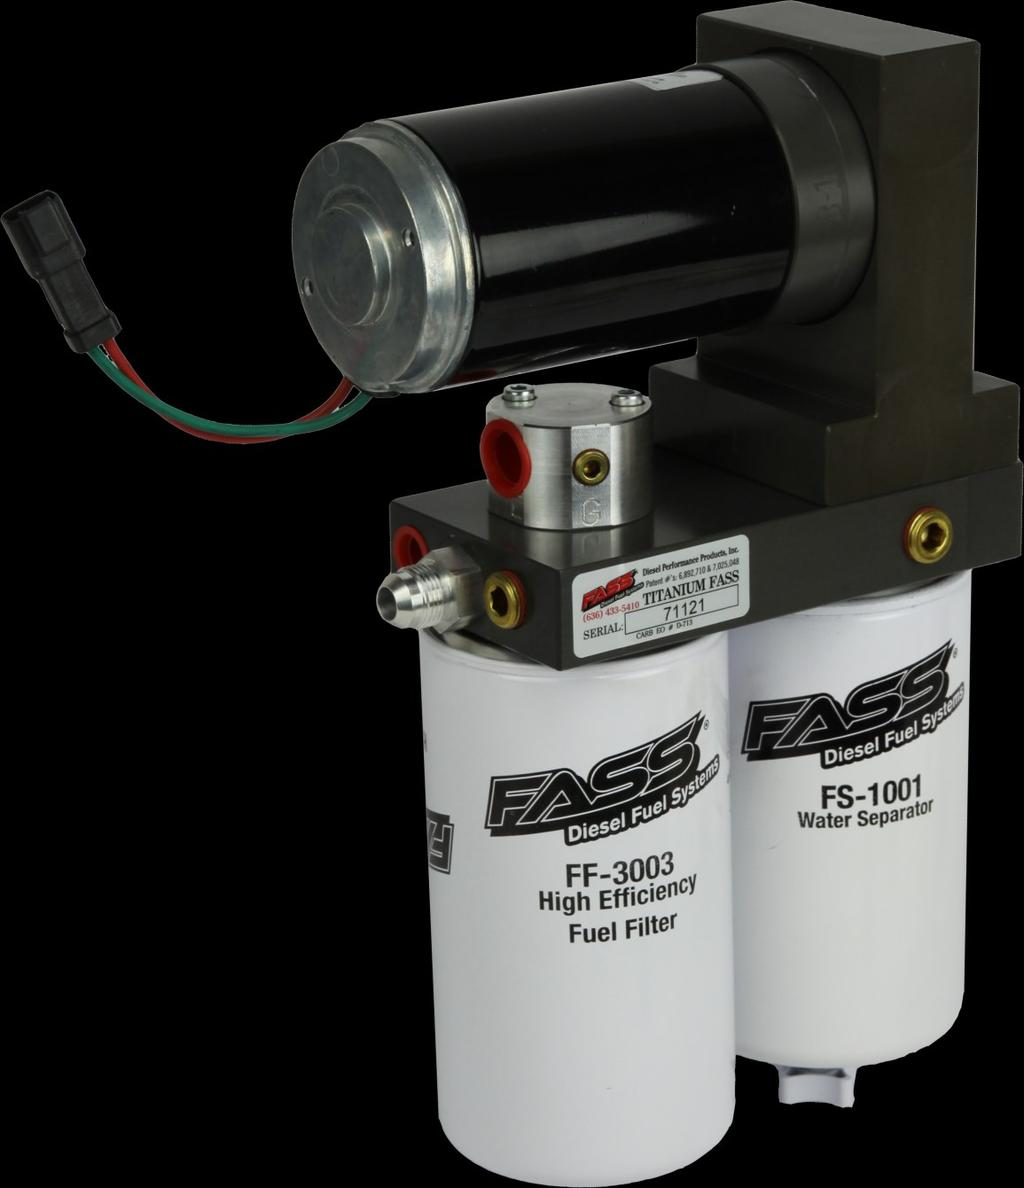 Installation Manual Application T F14 220g 55psi Powerstroke 73l 3976 Fuel Filter Install Ff 3003 On Side Of Pump With Draw Tube In The Middle